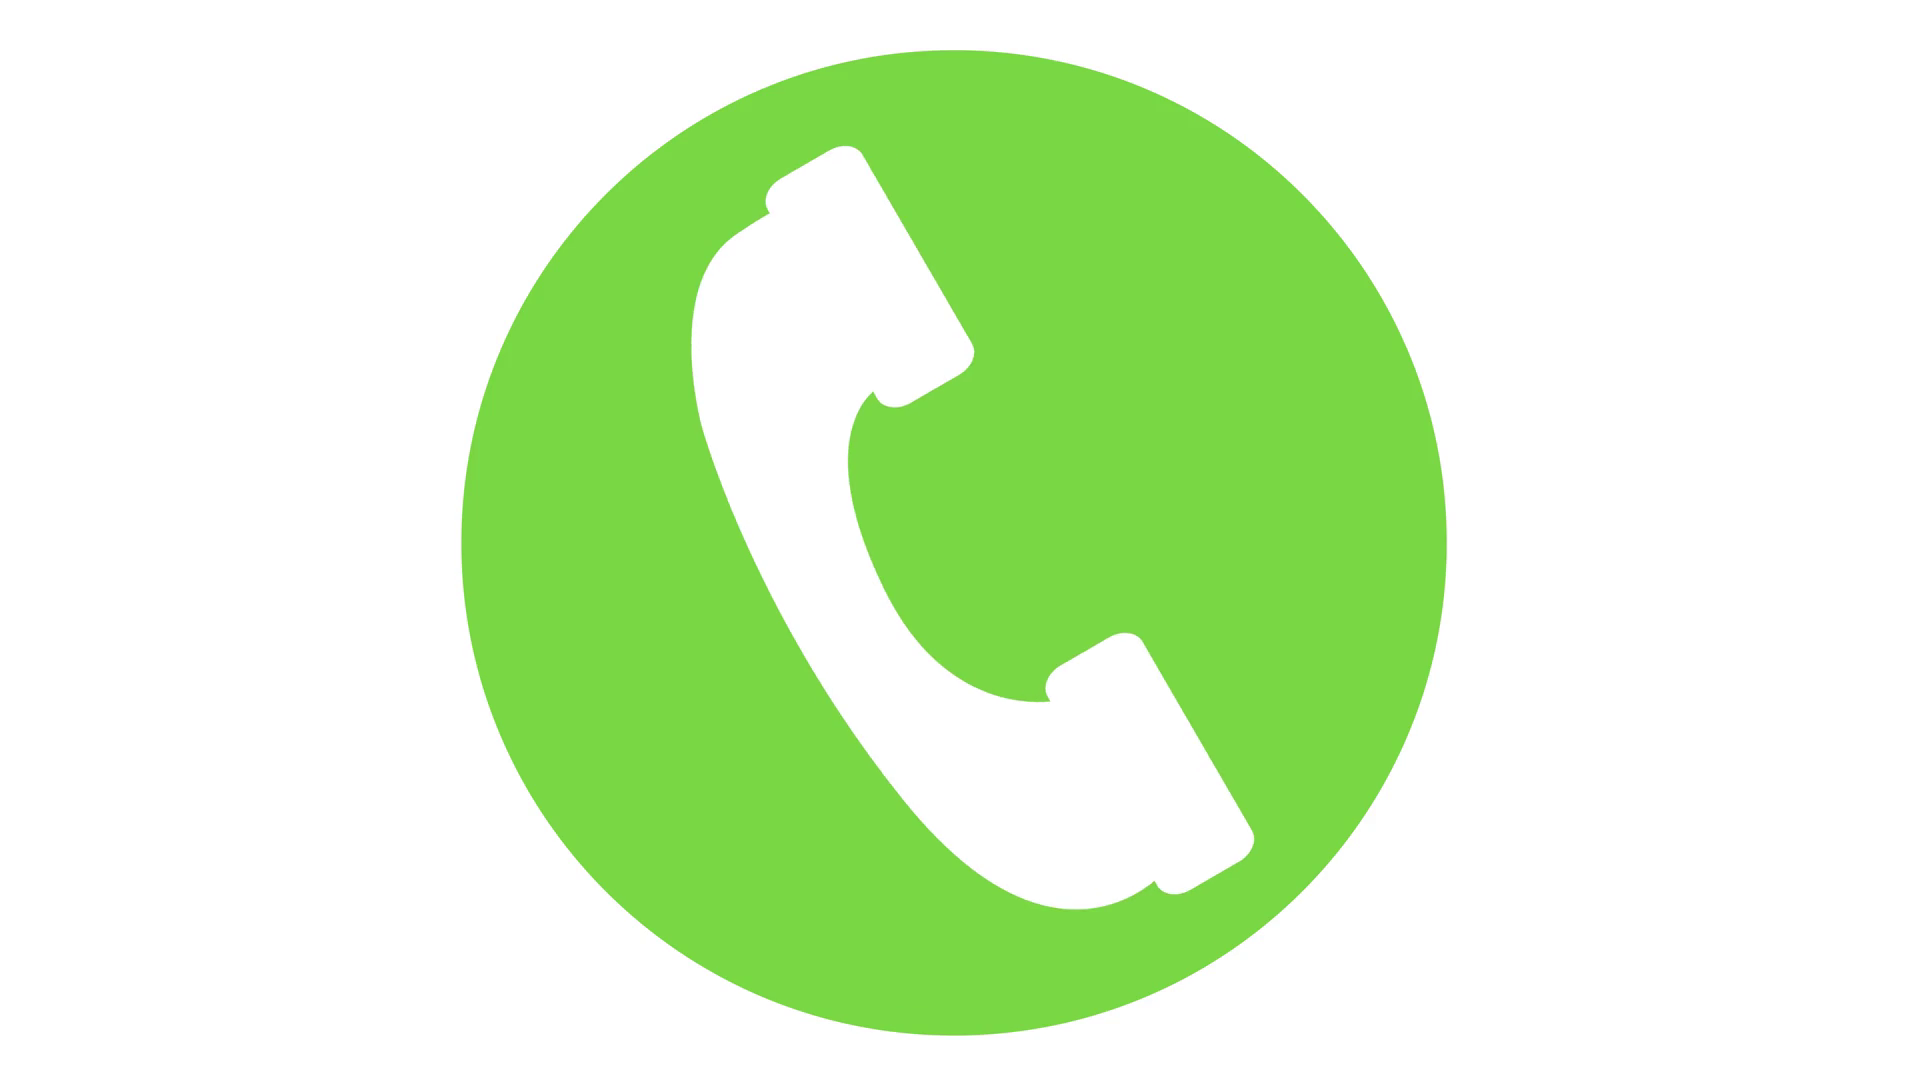 cell phone icon incoming call symbol looping animation Green Motion  Background.